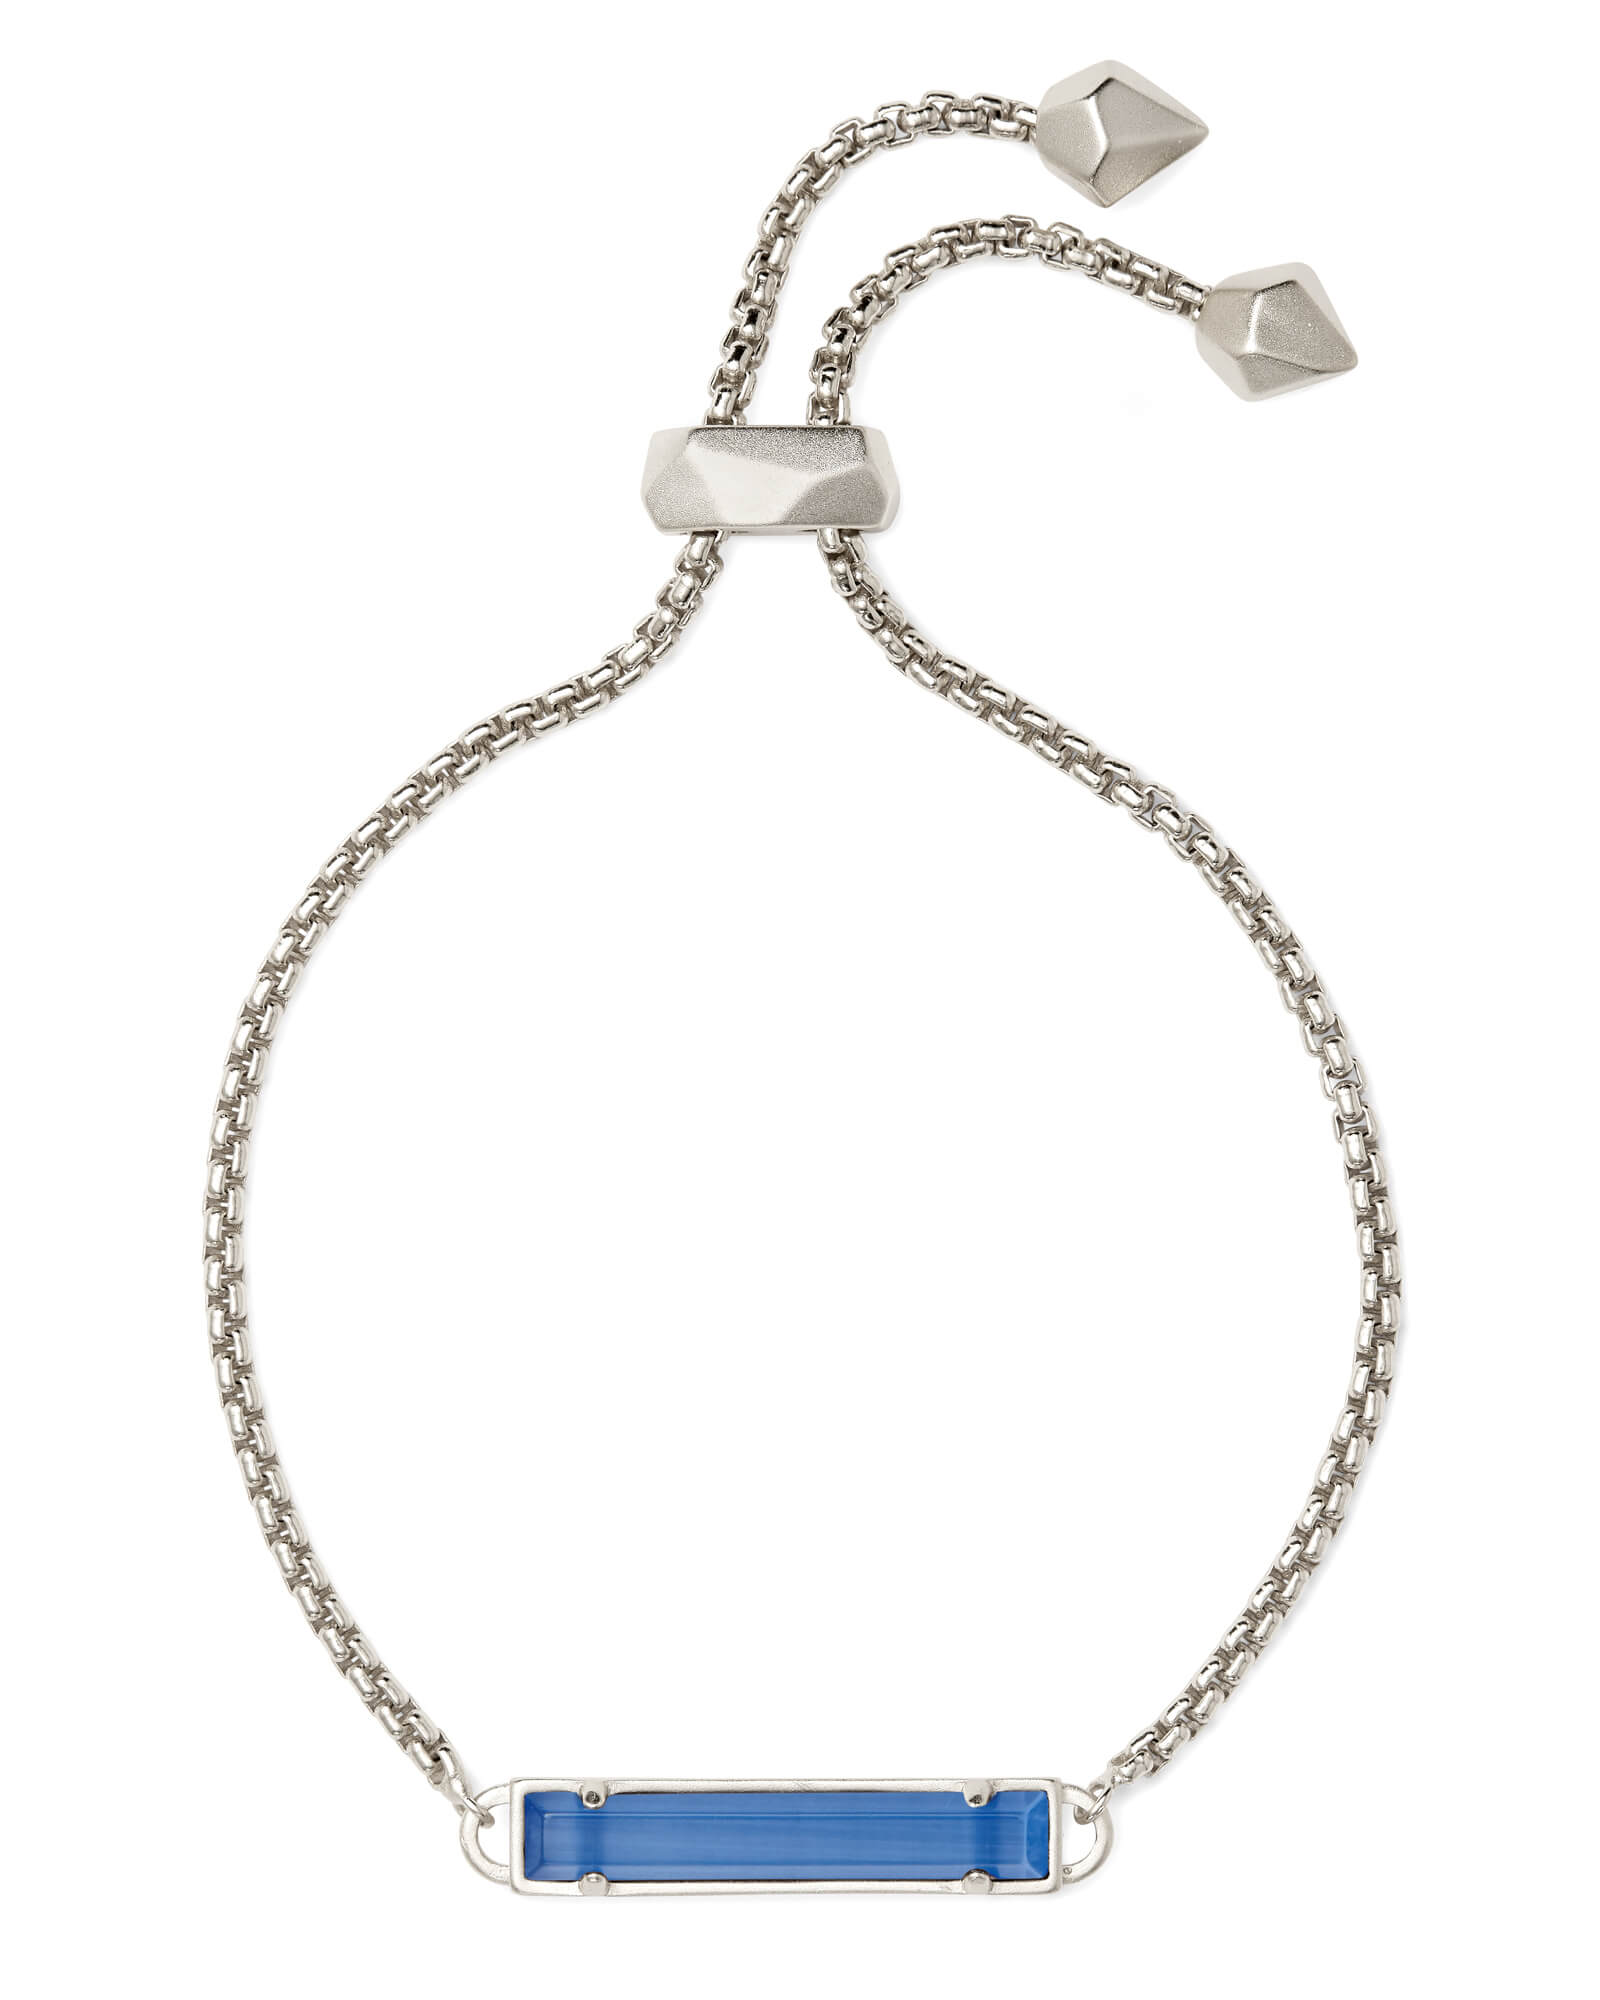 da6bcda17 Stan Silver Chain Bracelet In Periwinkle Cats Eye| Kendra Scott